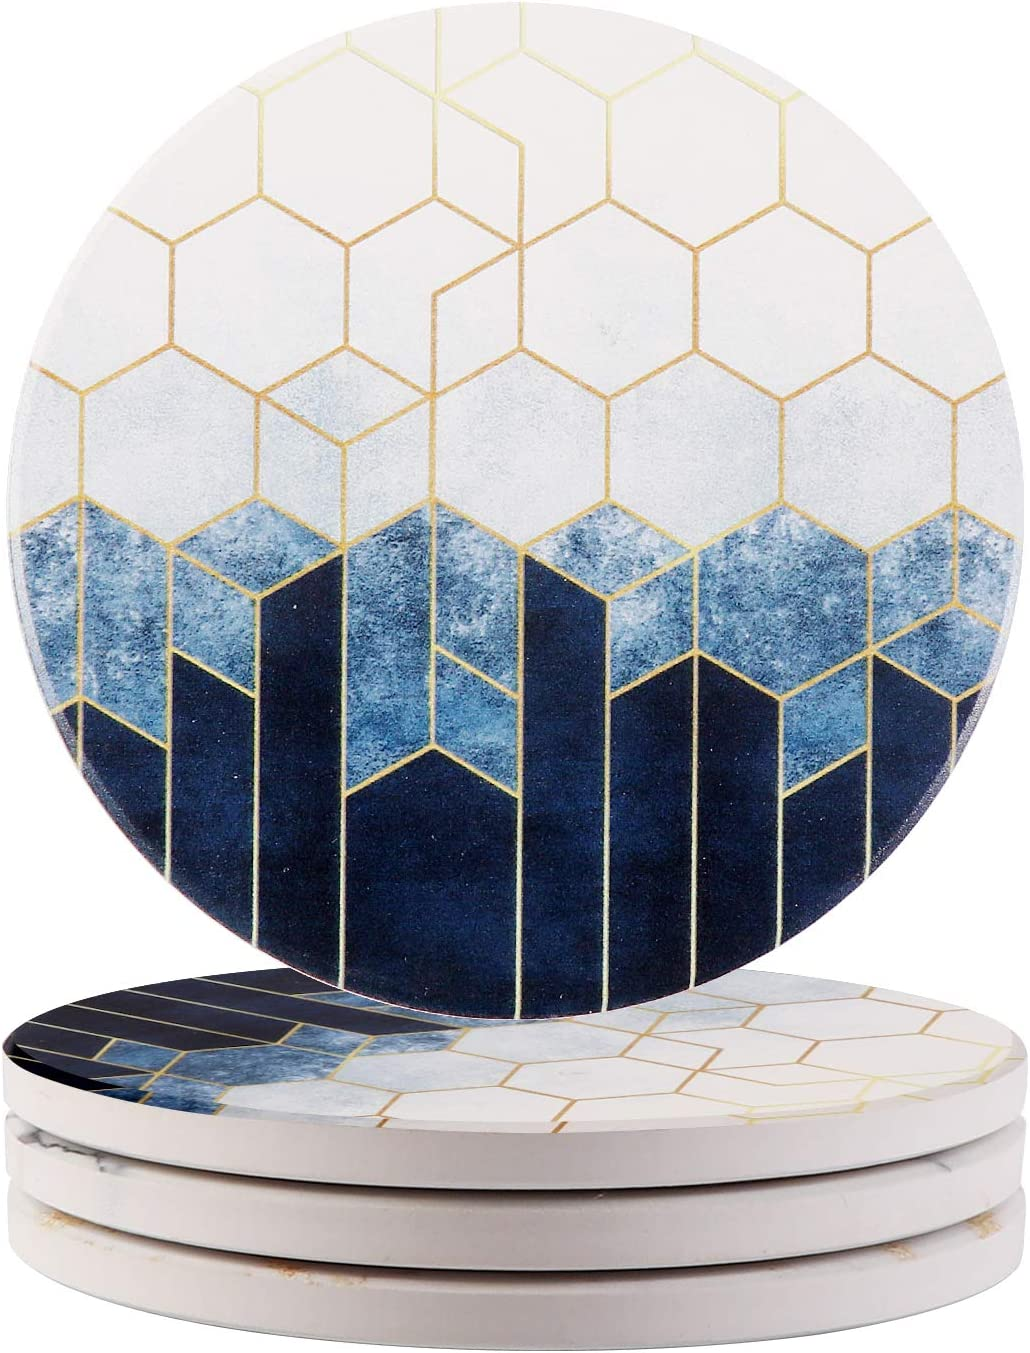 Ailsan Coasters for Drinks Round Absorbent Coasters Set of 4 Navy Blue Diamond Geometry Marble Style Ceramic Stone Coasters with Cork Base 4 inches Housewarming Gift for Home and Kitchen